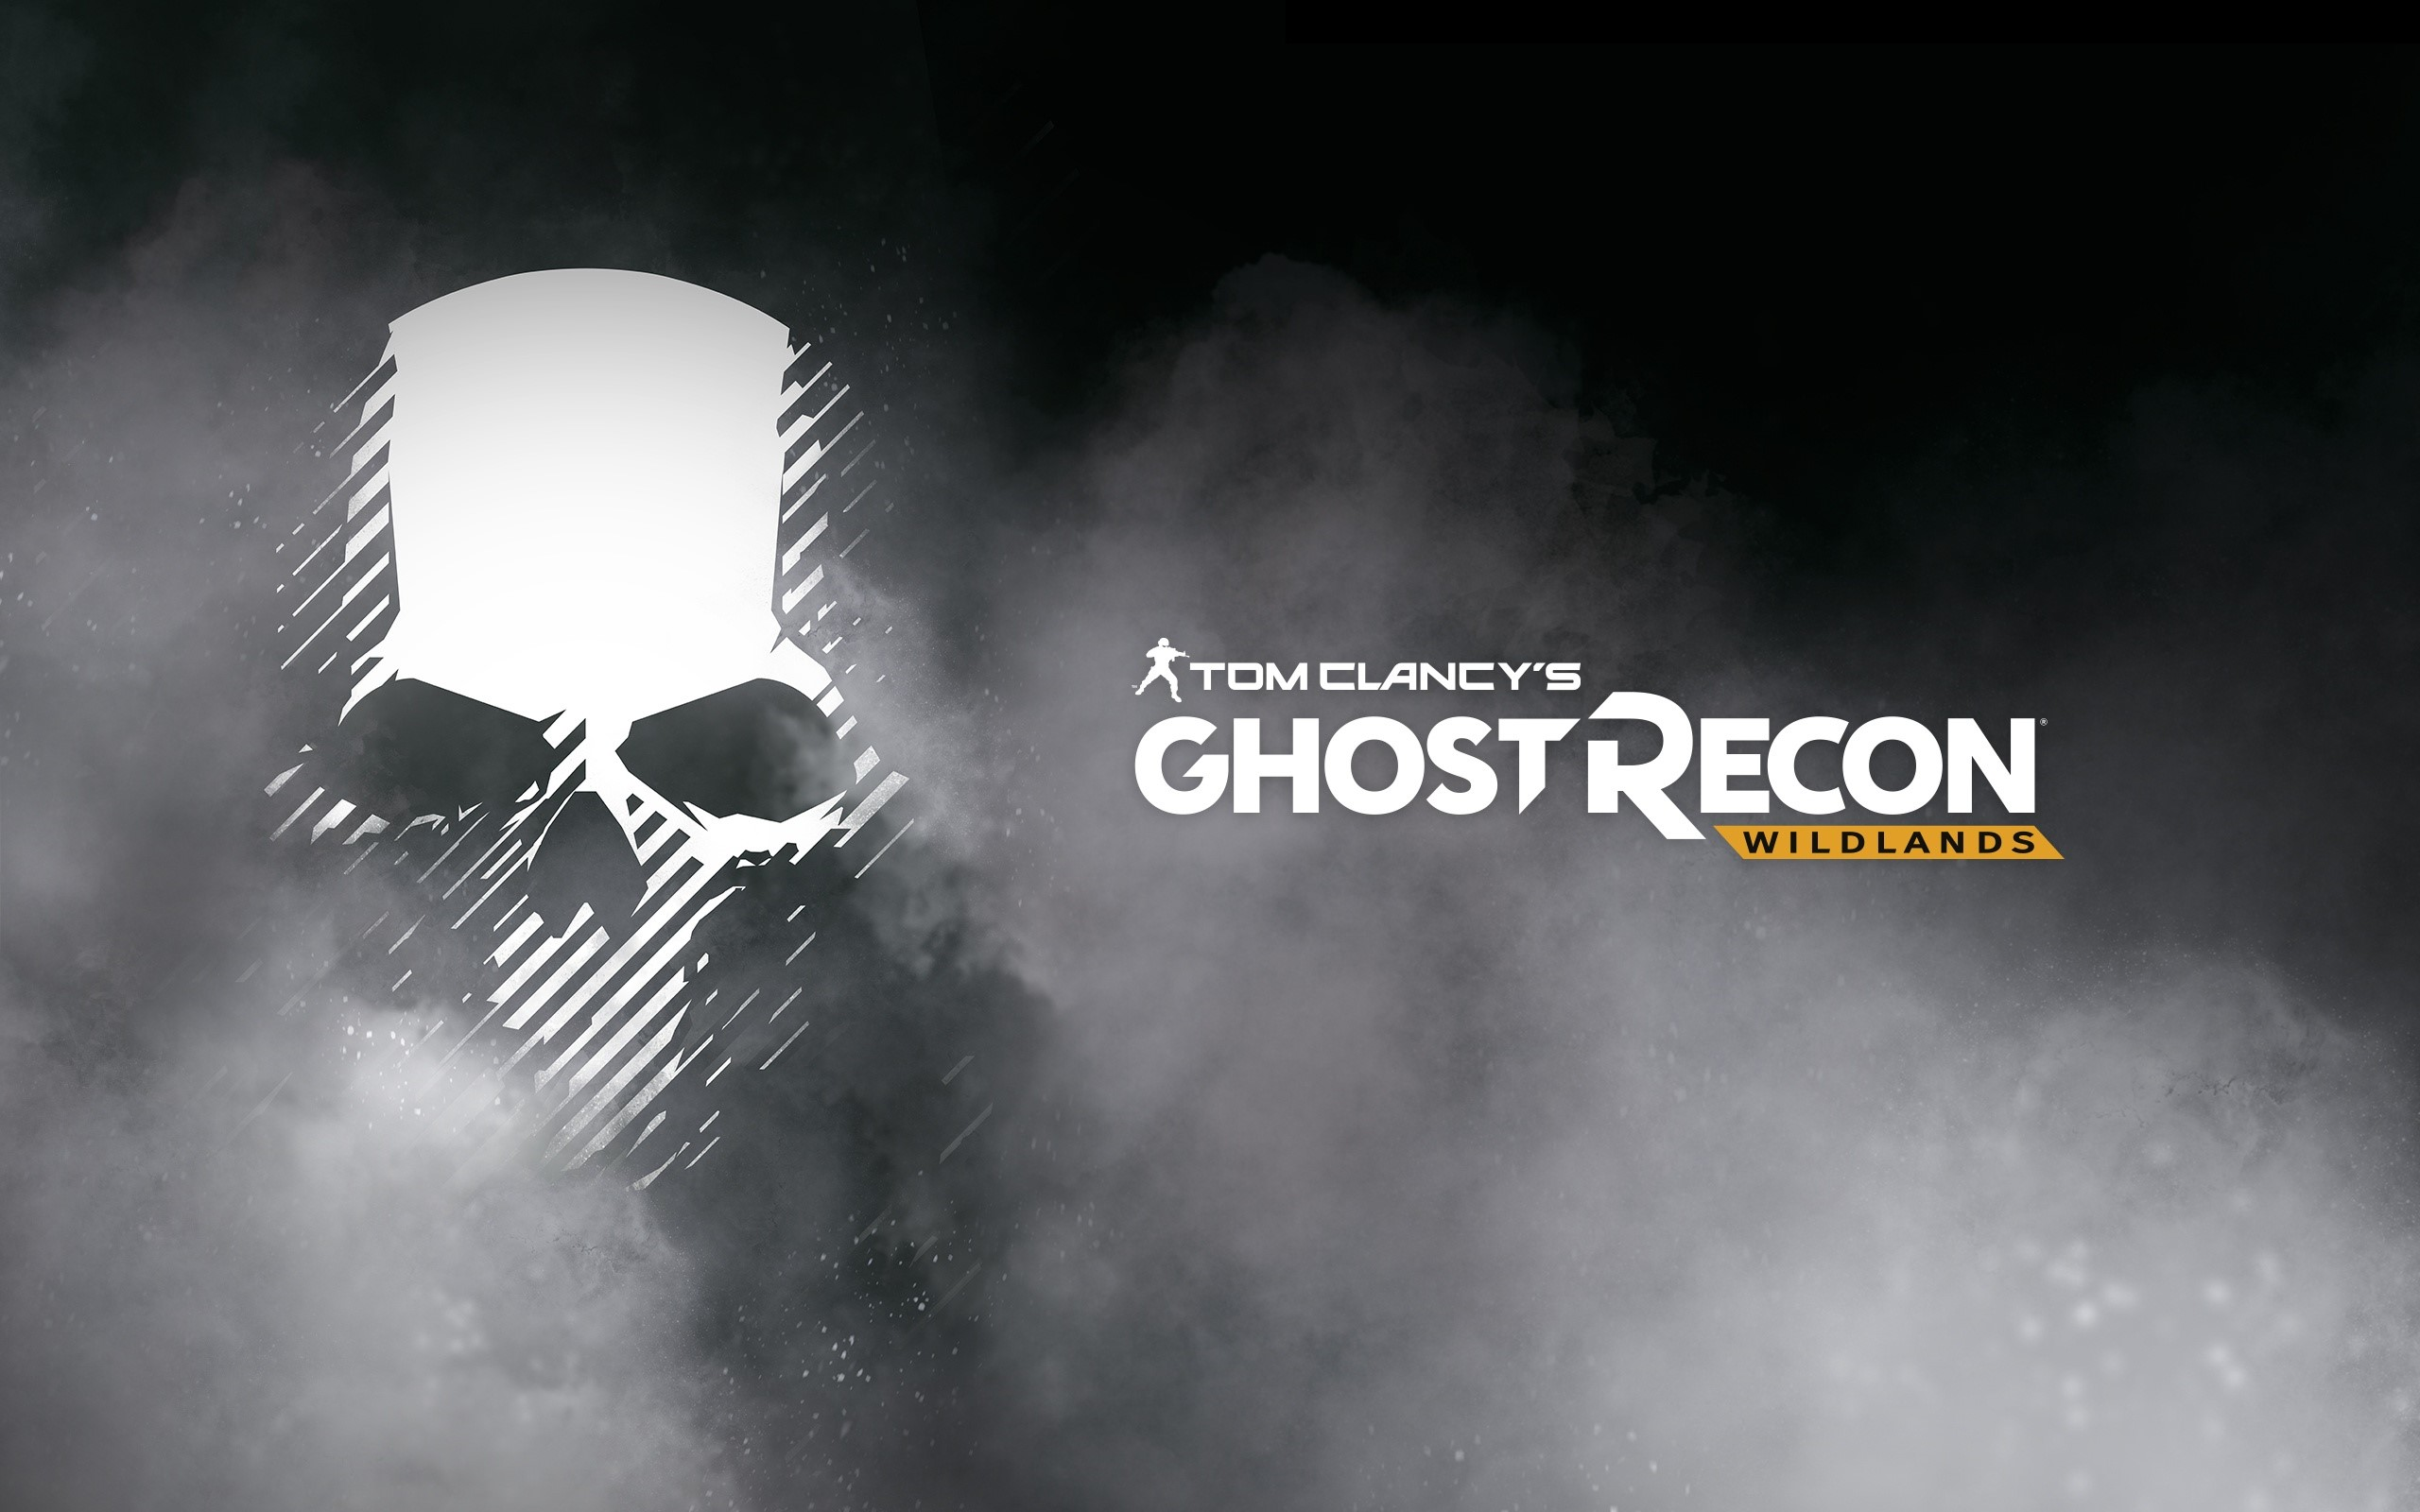 Wallpaper Game Tom Clancys Ghost Recon